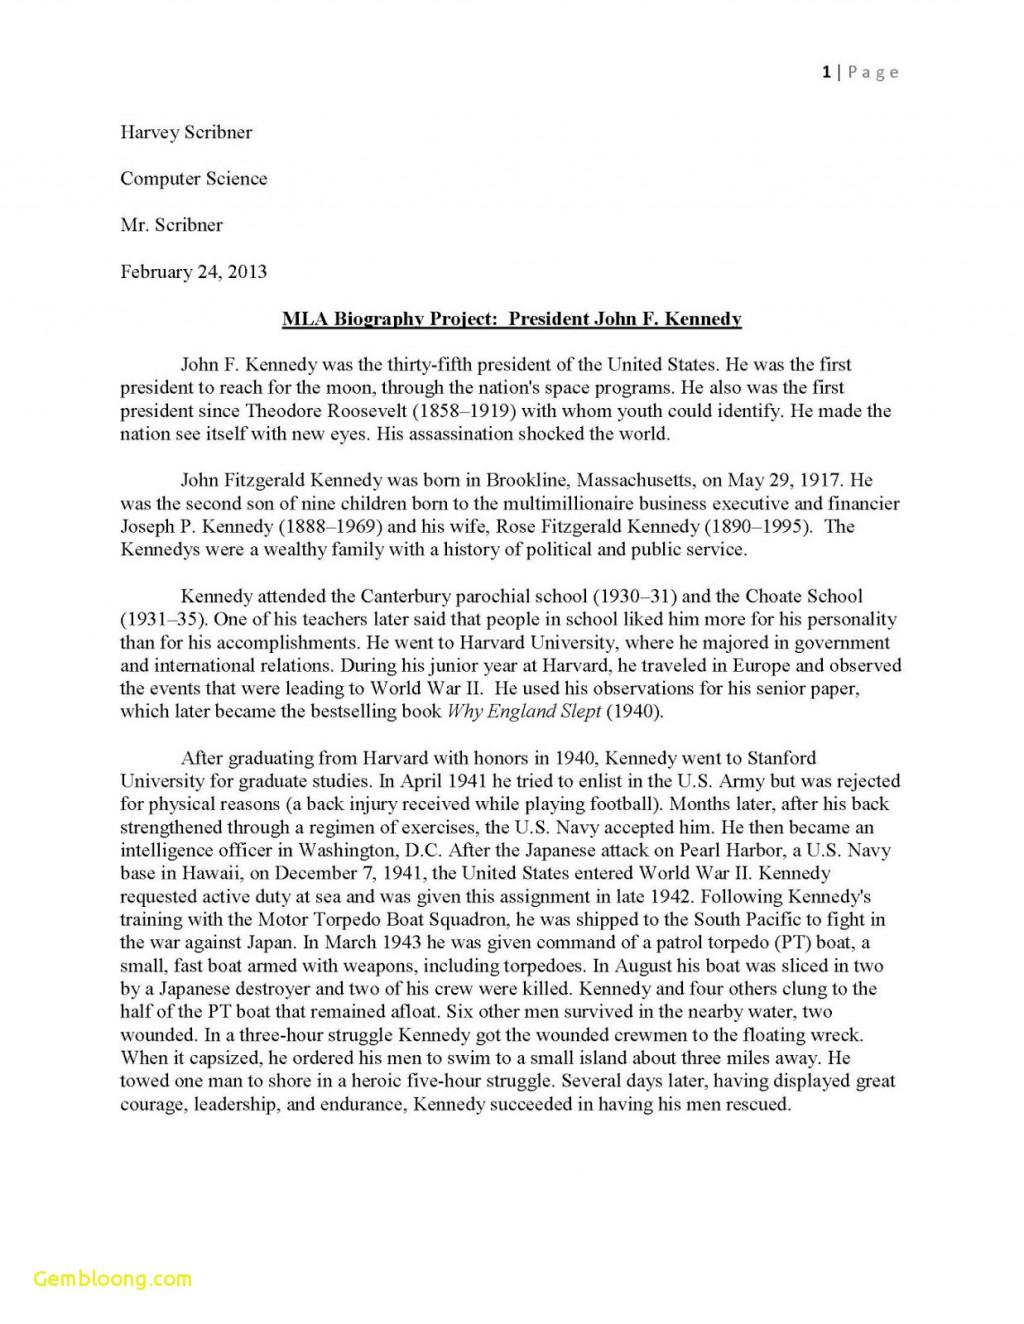 002 Essay Example Common Application Examples Unique Mon App Essays Etame Mibawa Of Formidable The Ivy League Failure Large